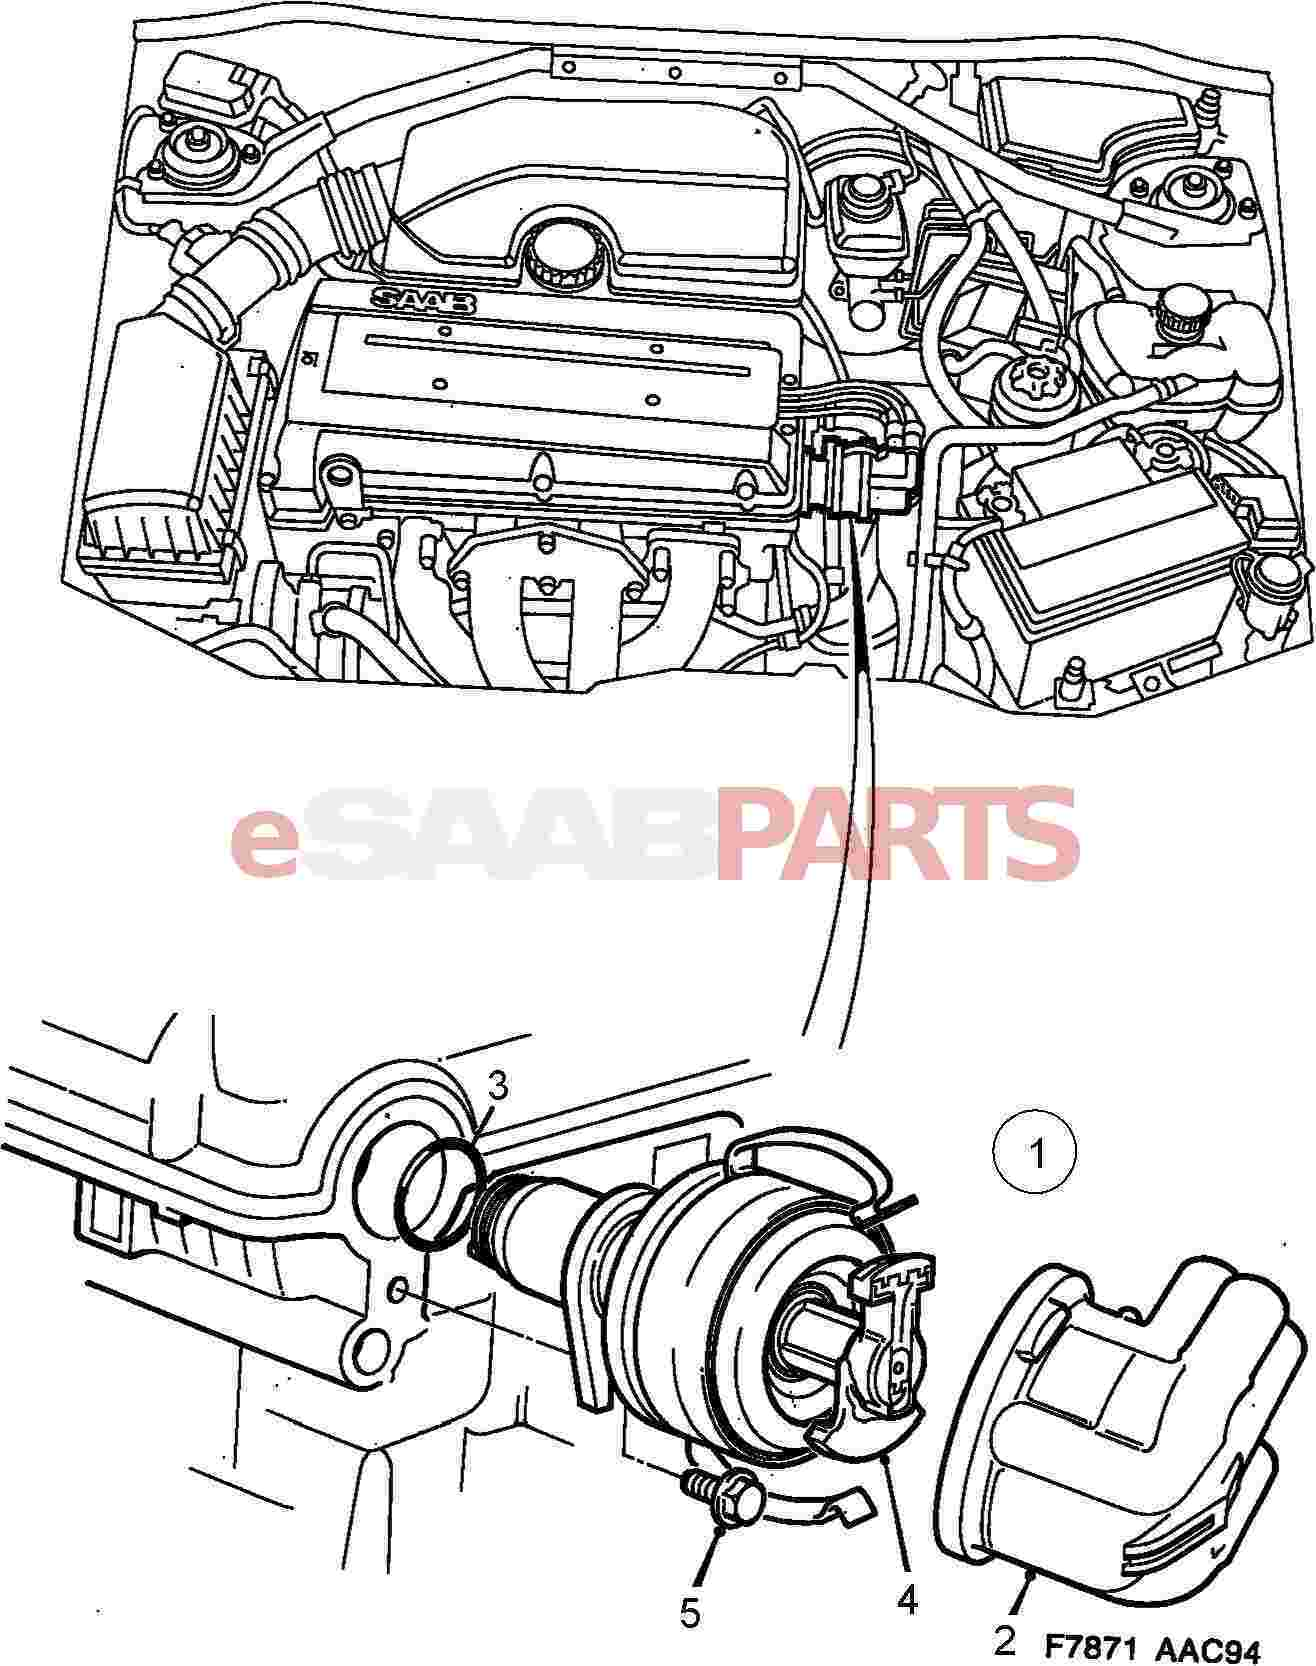 Saab 900 Electrical Parts Ignition Components Wiring Diagram Distributor 4 Cylinder